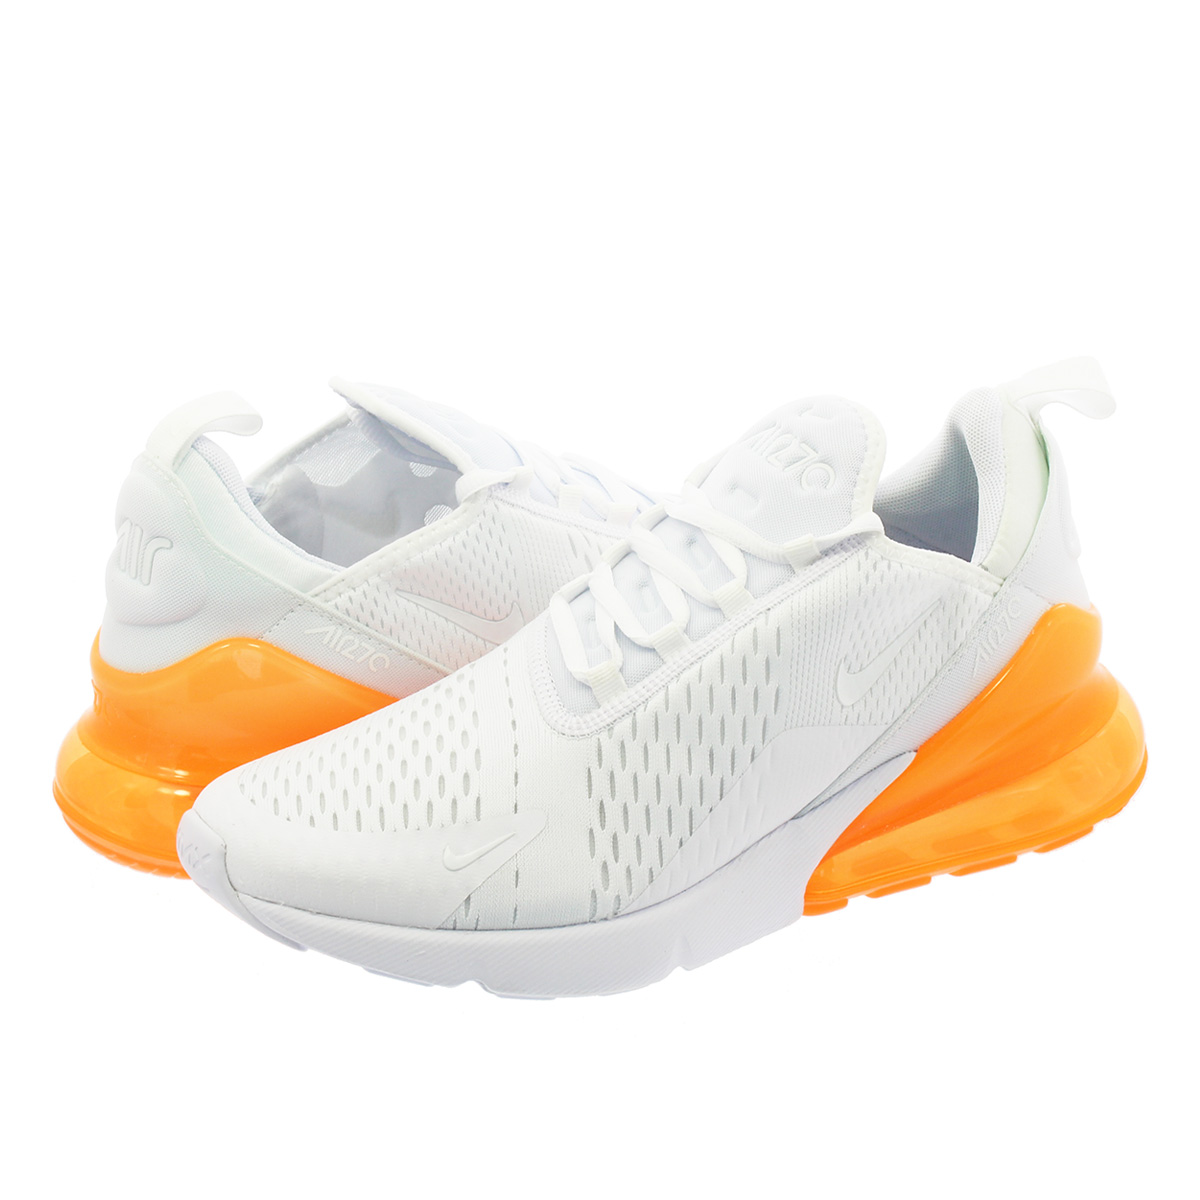 newest collection d2c89 4b62b NIKE AIR MAX 270 Kie Ney AMAX 270 WHITE/TOTAL ORANGE ah8050-102